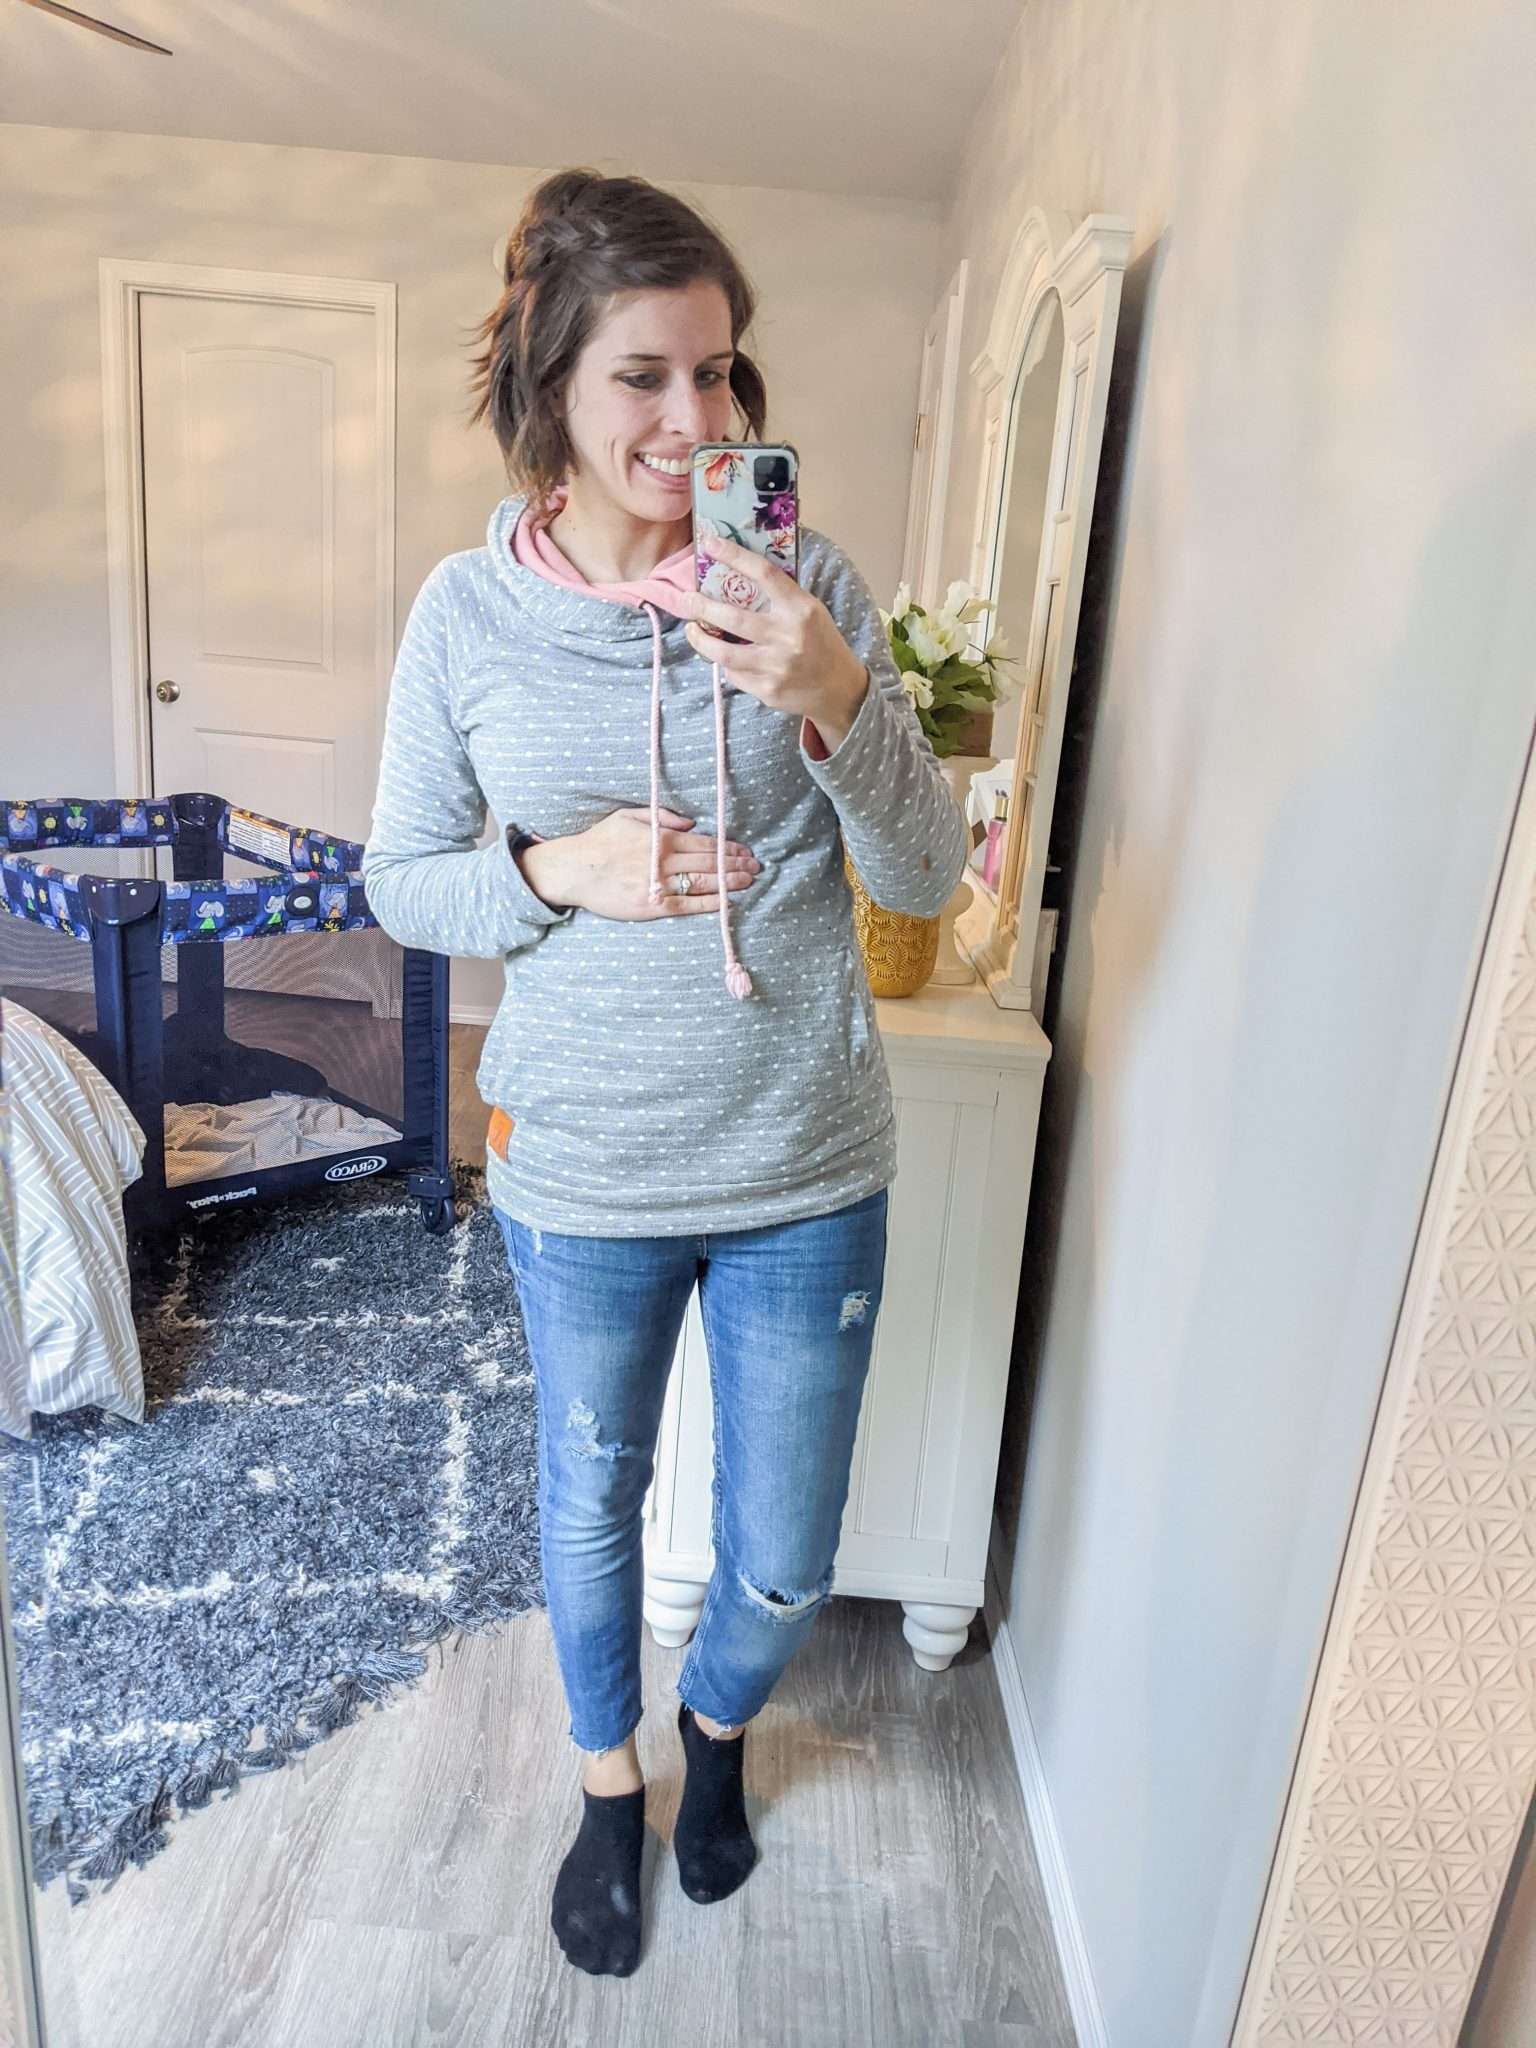 How to Put Together Complete Outfits from Your Maternity Capsule Wardrobe - What to wear when pregnant - What kind of clothes to wear during pregnancy (2)